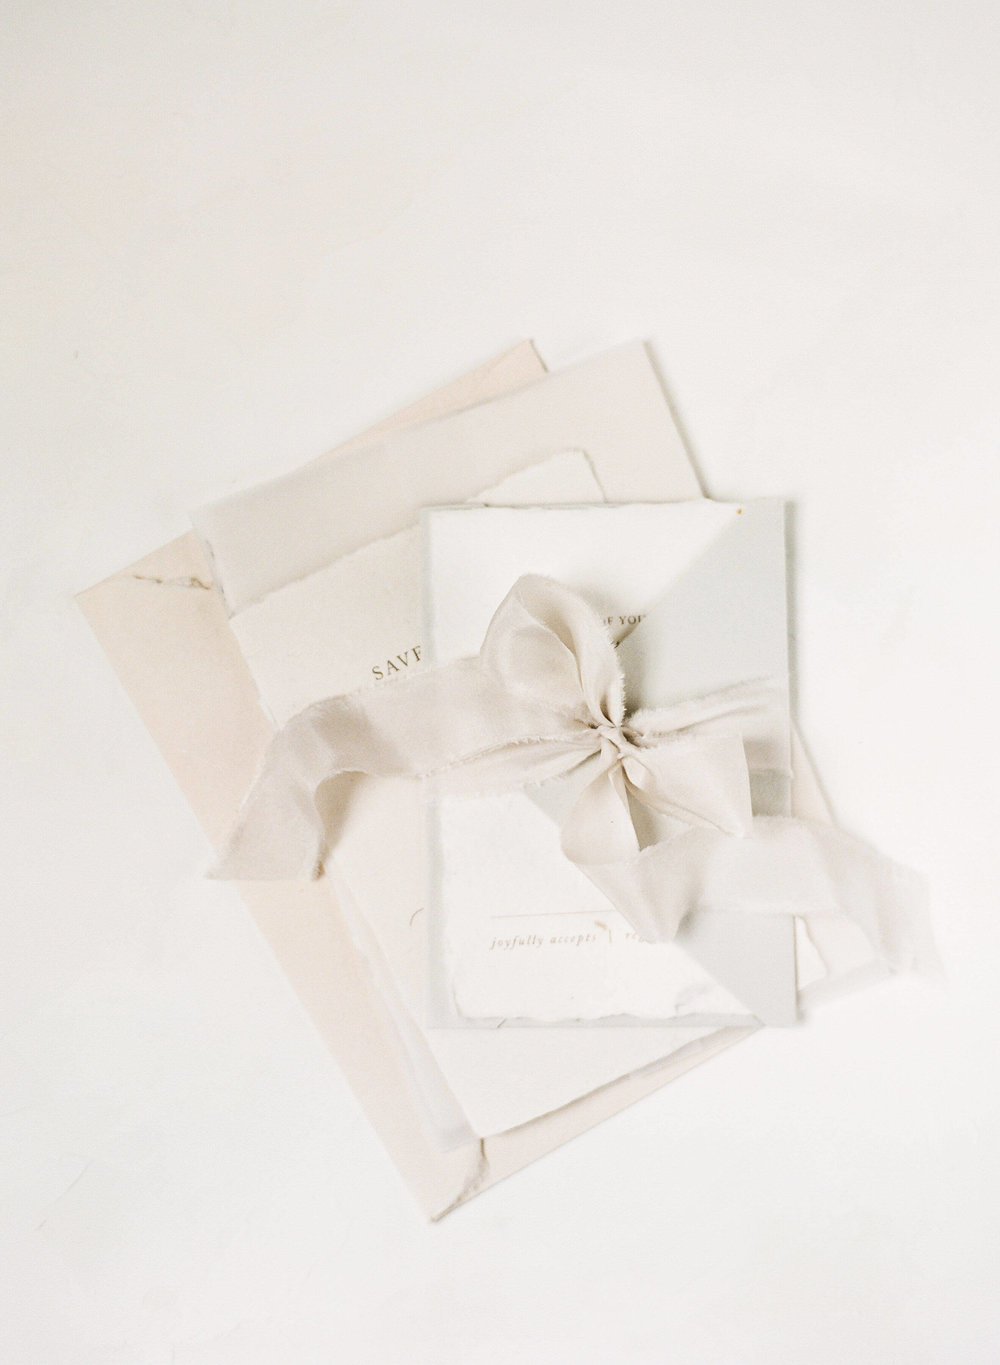 Ivory & Twine Toronto Wedding Invitation Bundle.jpg